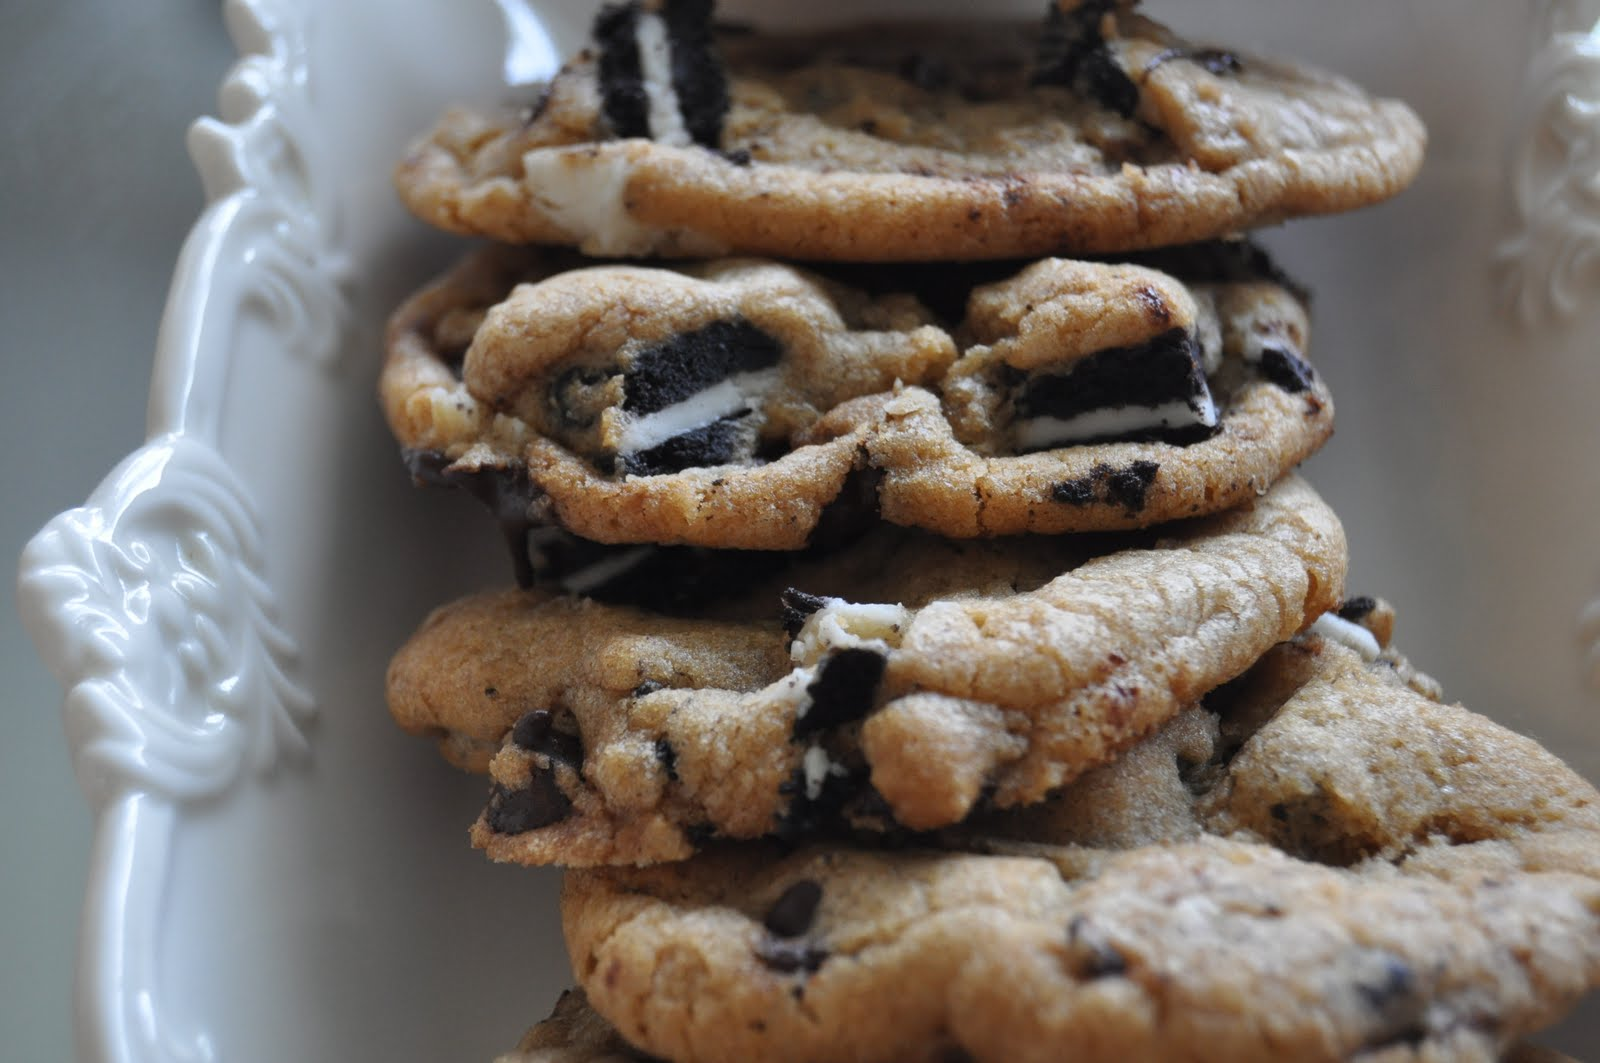 Impeccable Taste: Chocolate Chip Oreo Cookies